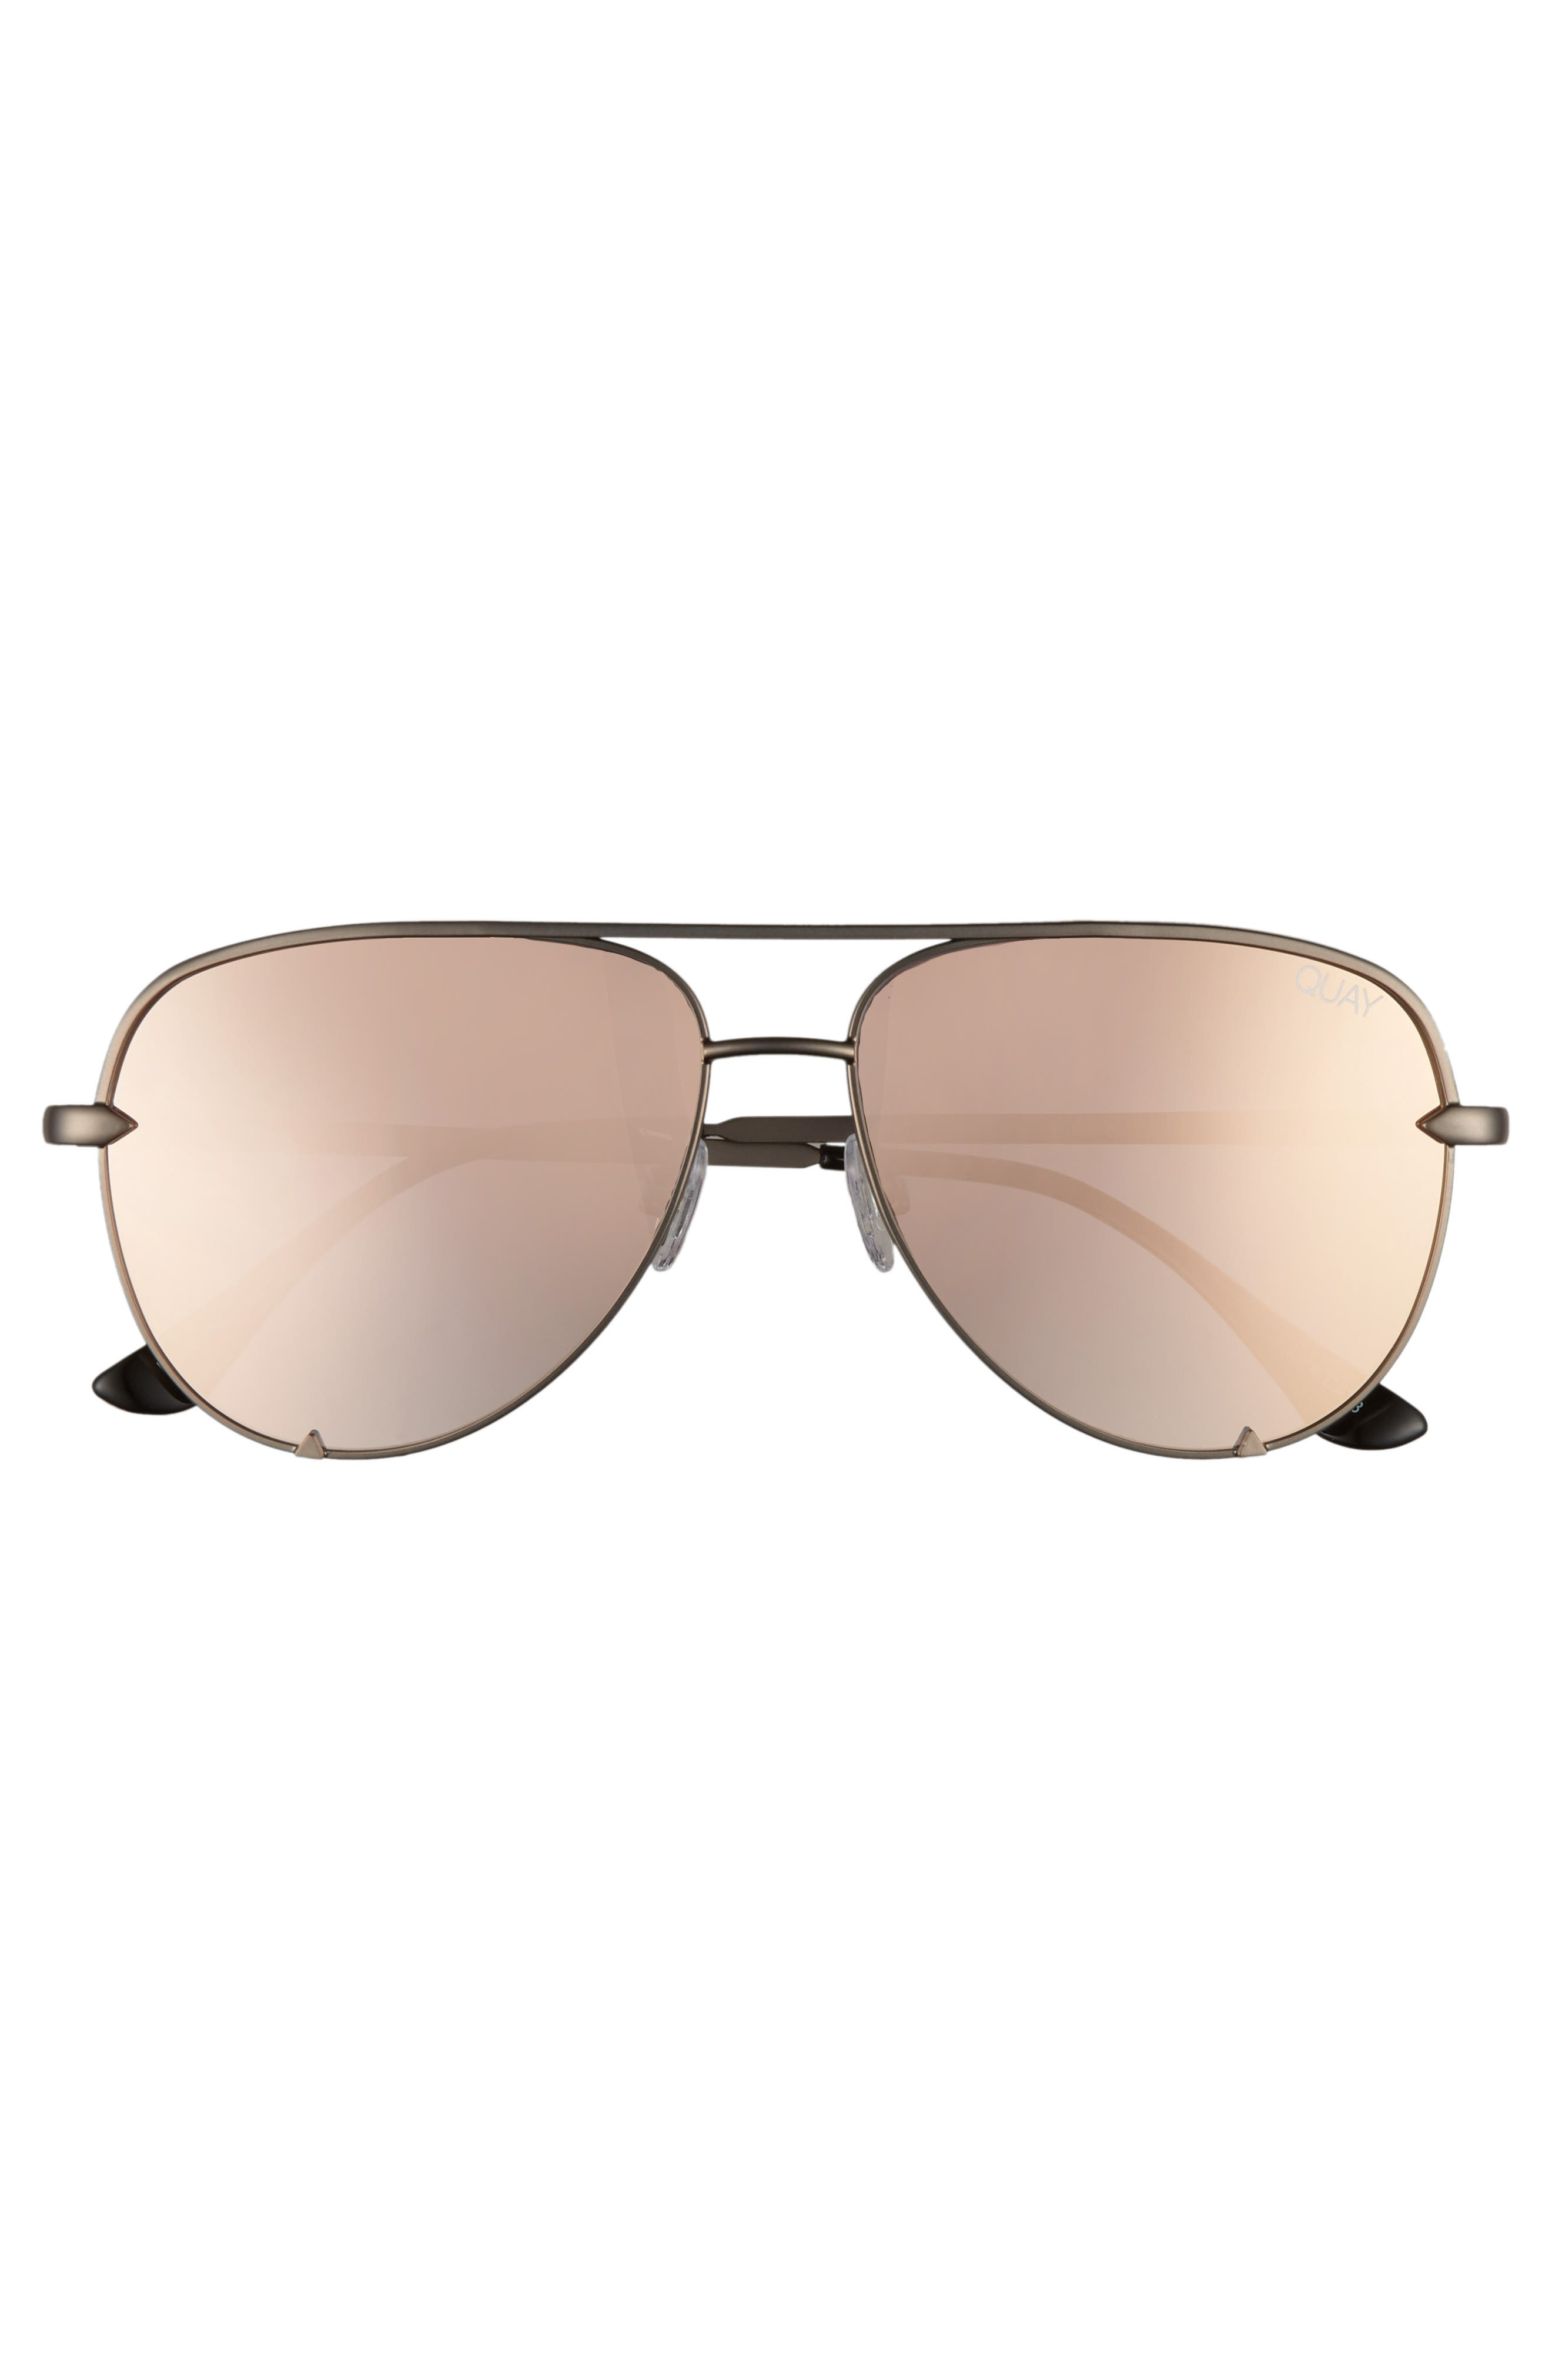 x Desi Perkins High Key Mini 57mm Aviator Sunglasses,                             Alternate thumbnail 3, color,                             GUNMETAL/ ROSE